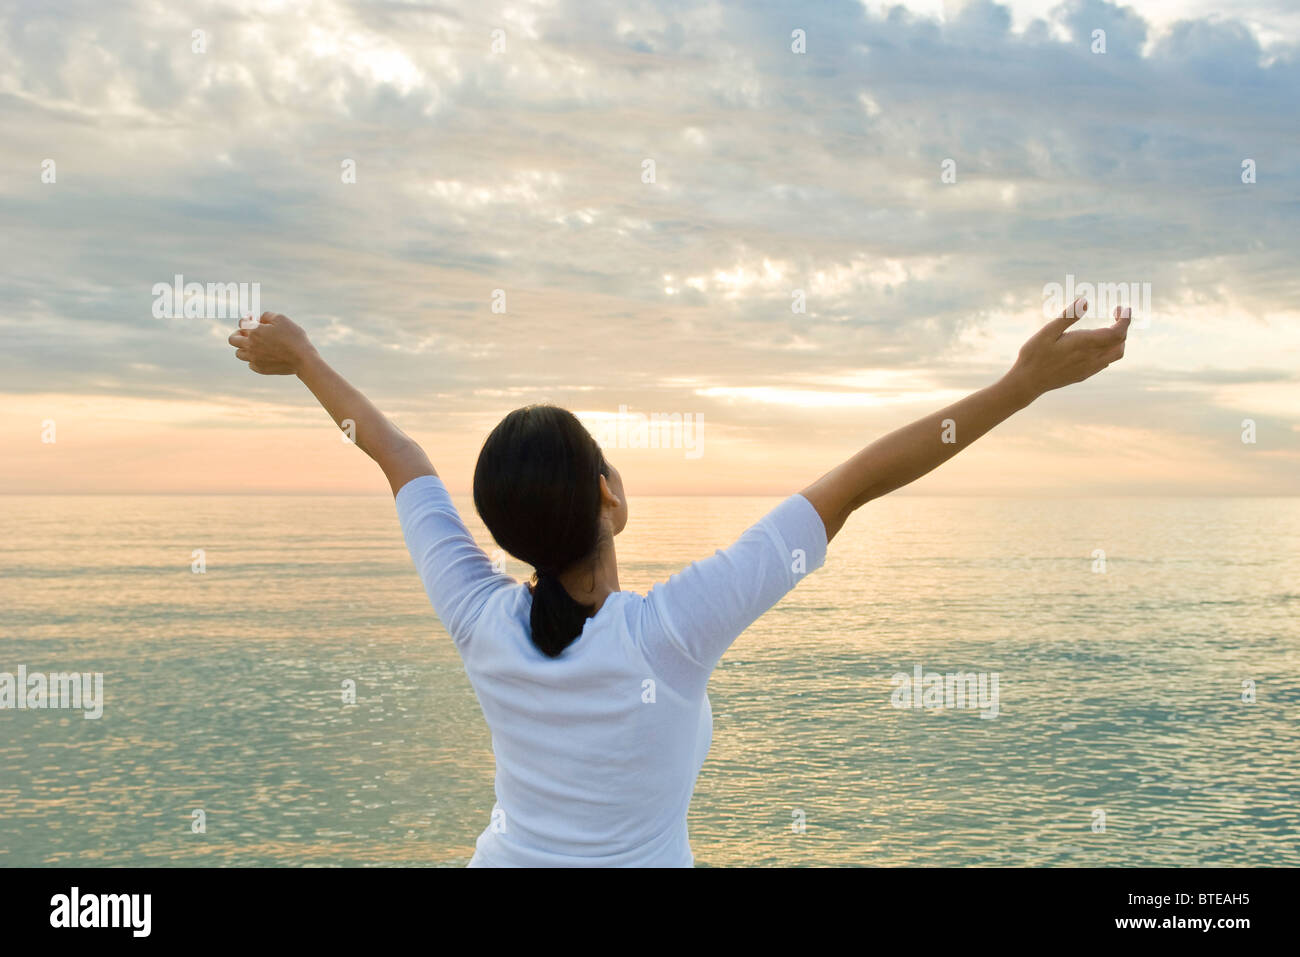 Woman watching sunset at the beach, arms raised in the air - Stock Image